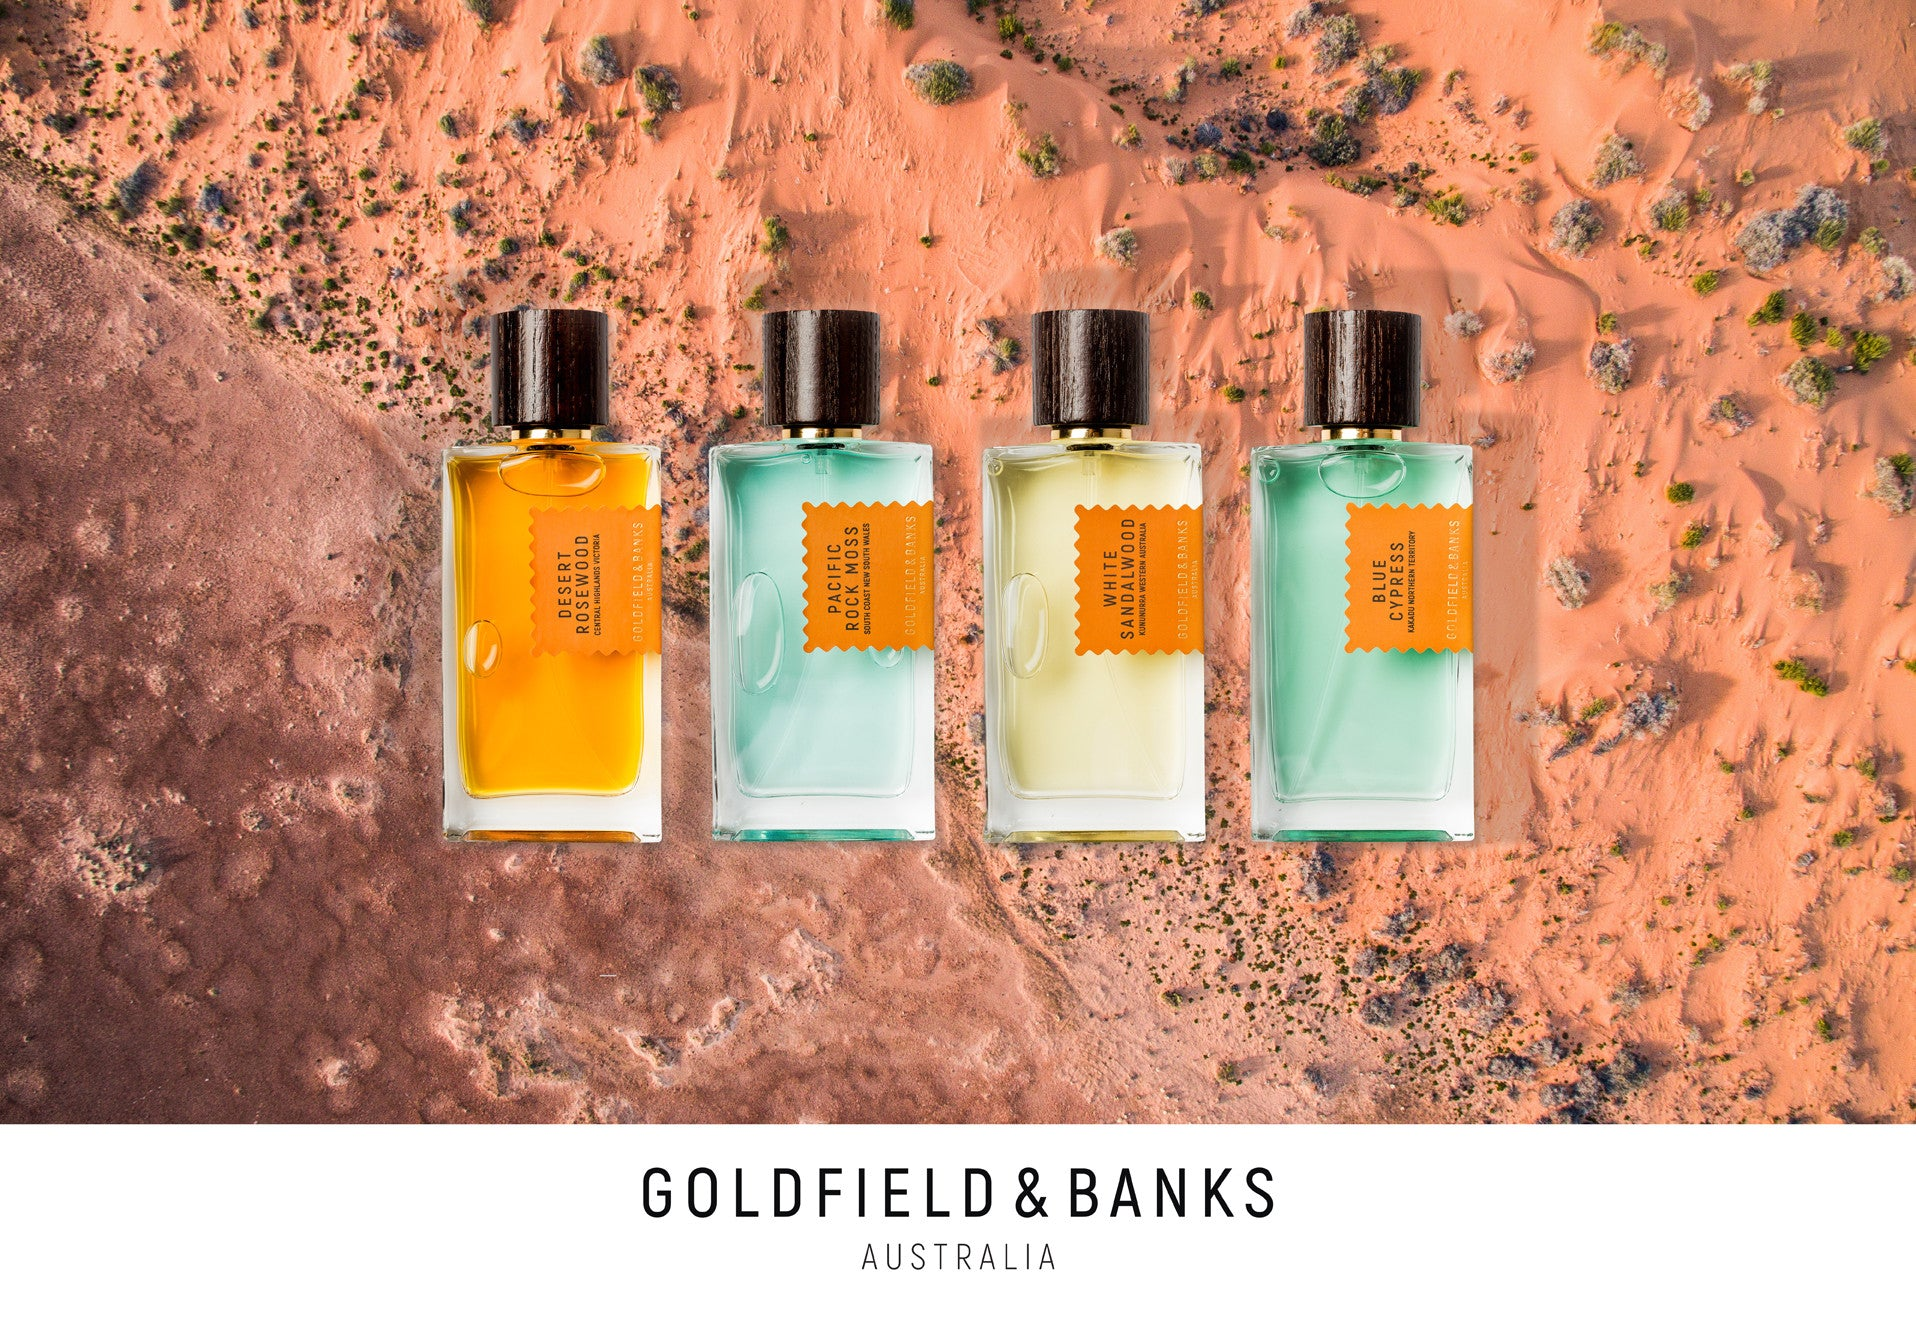 Goldfield & Banks Australia Natural Perfumes, available now at Kiana Beauty